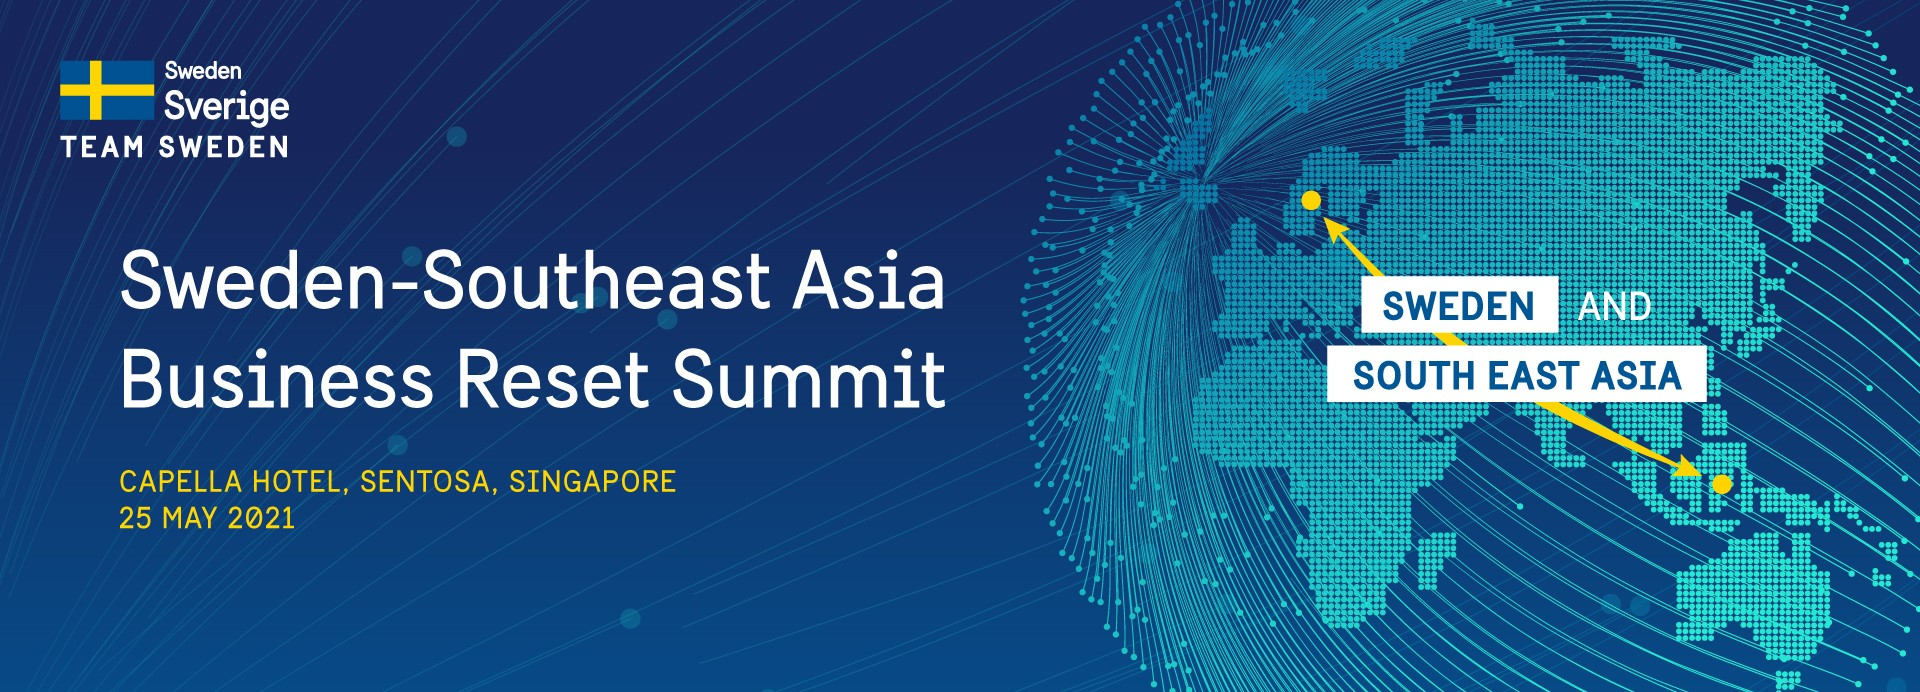 Header image for Sweden-Southeast Asia Business Reset Summit 2021 [Hybrid Event]